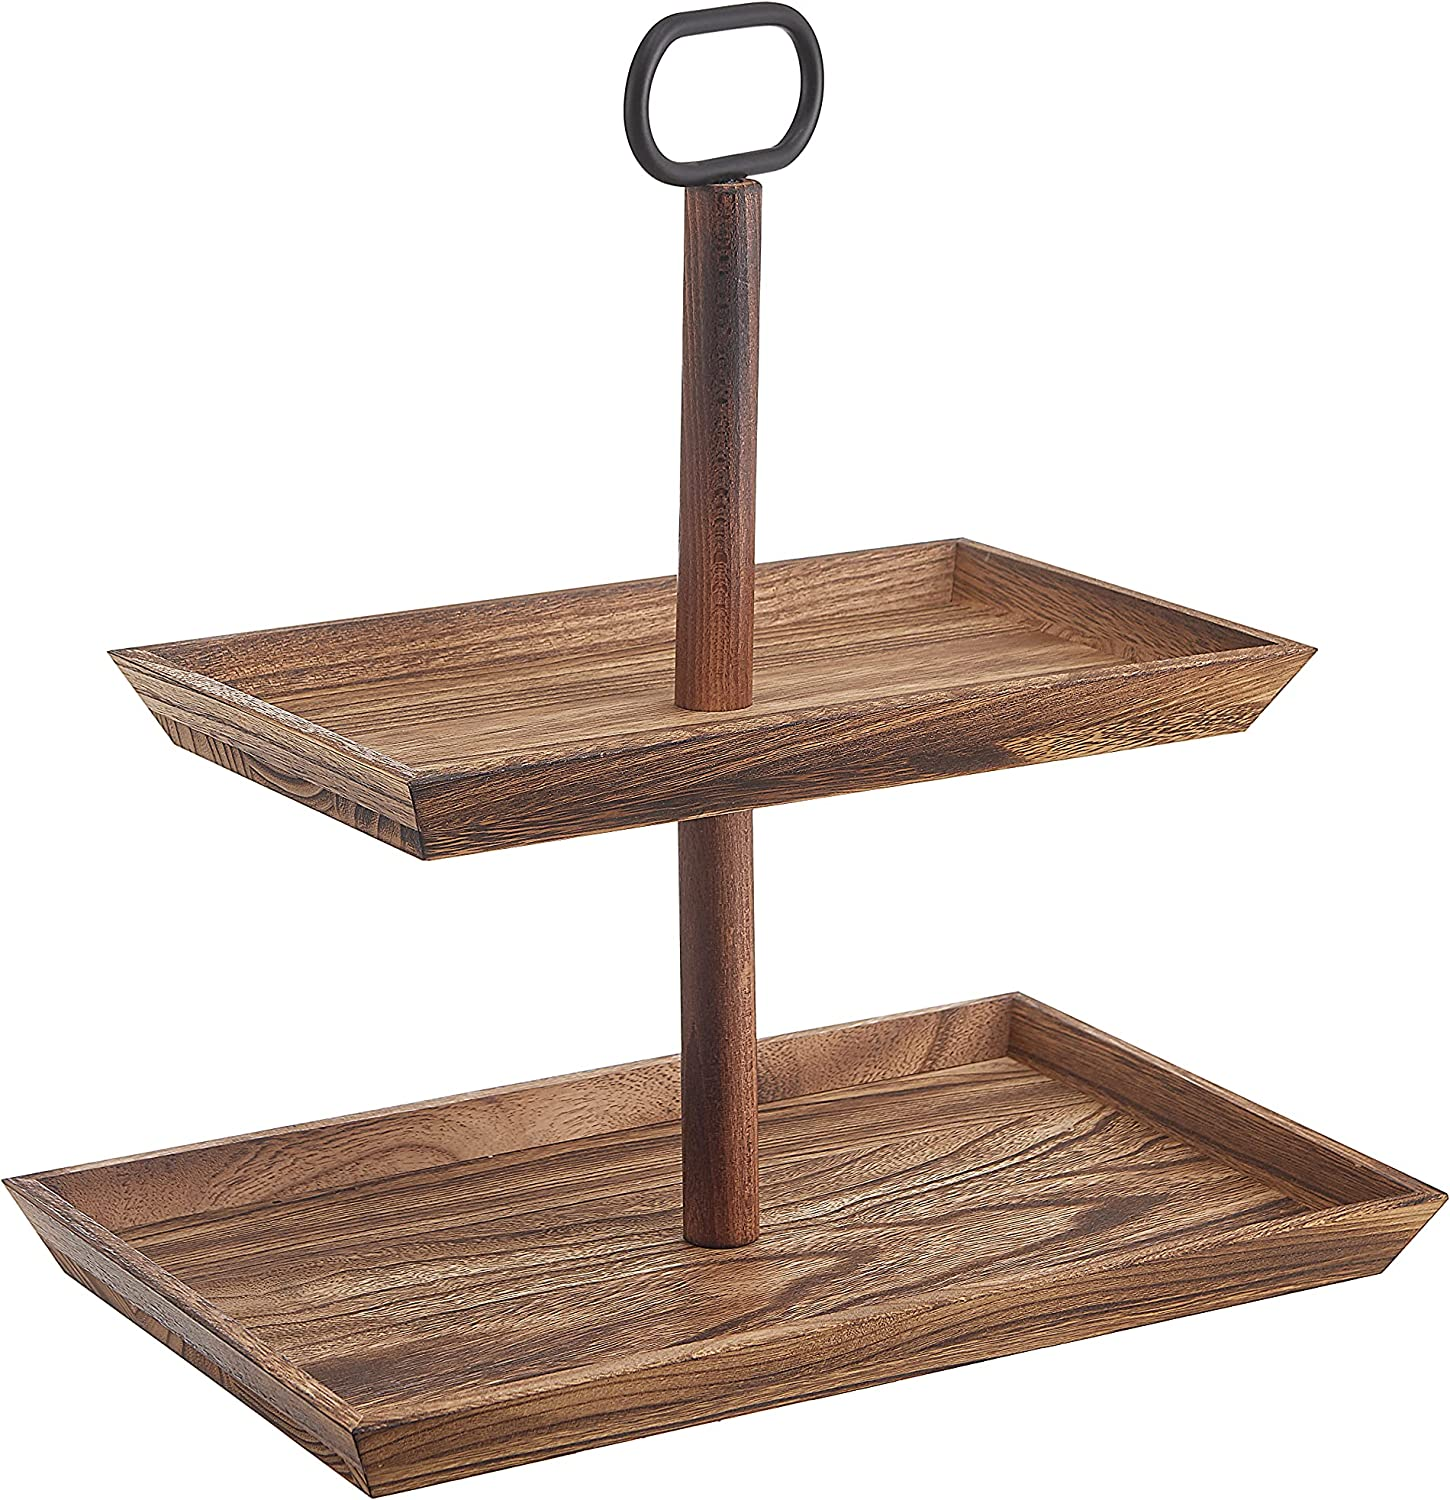 Realyoo Tiered Tray Max 61% OFF Stand 2 Rustic Cheap mail order sales Vin Tier Wooden